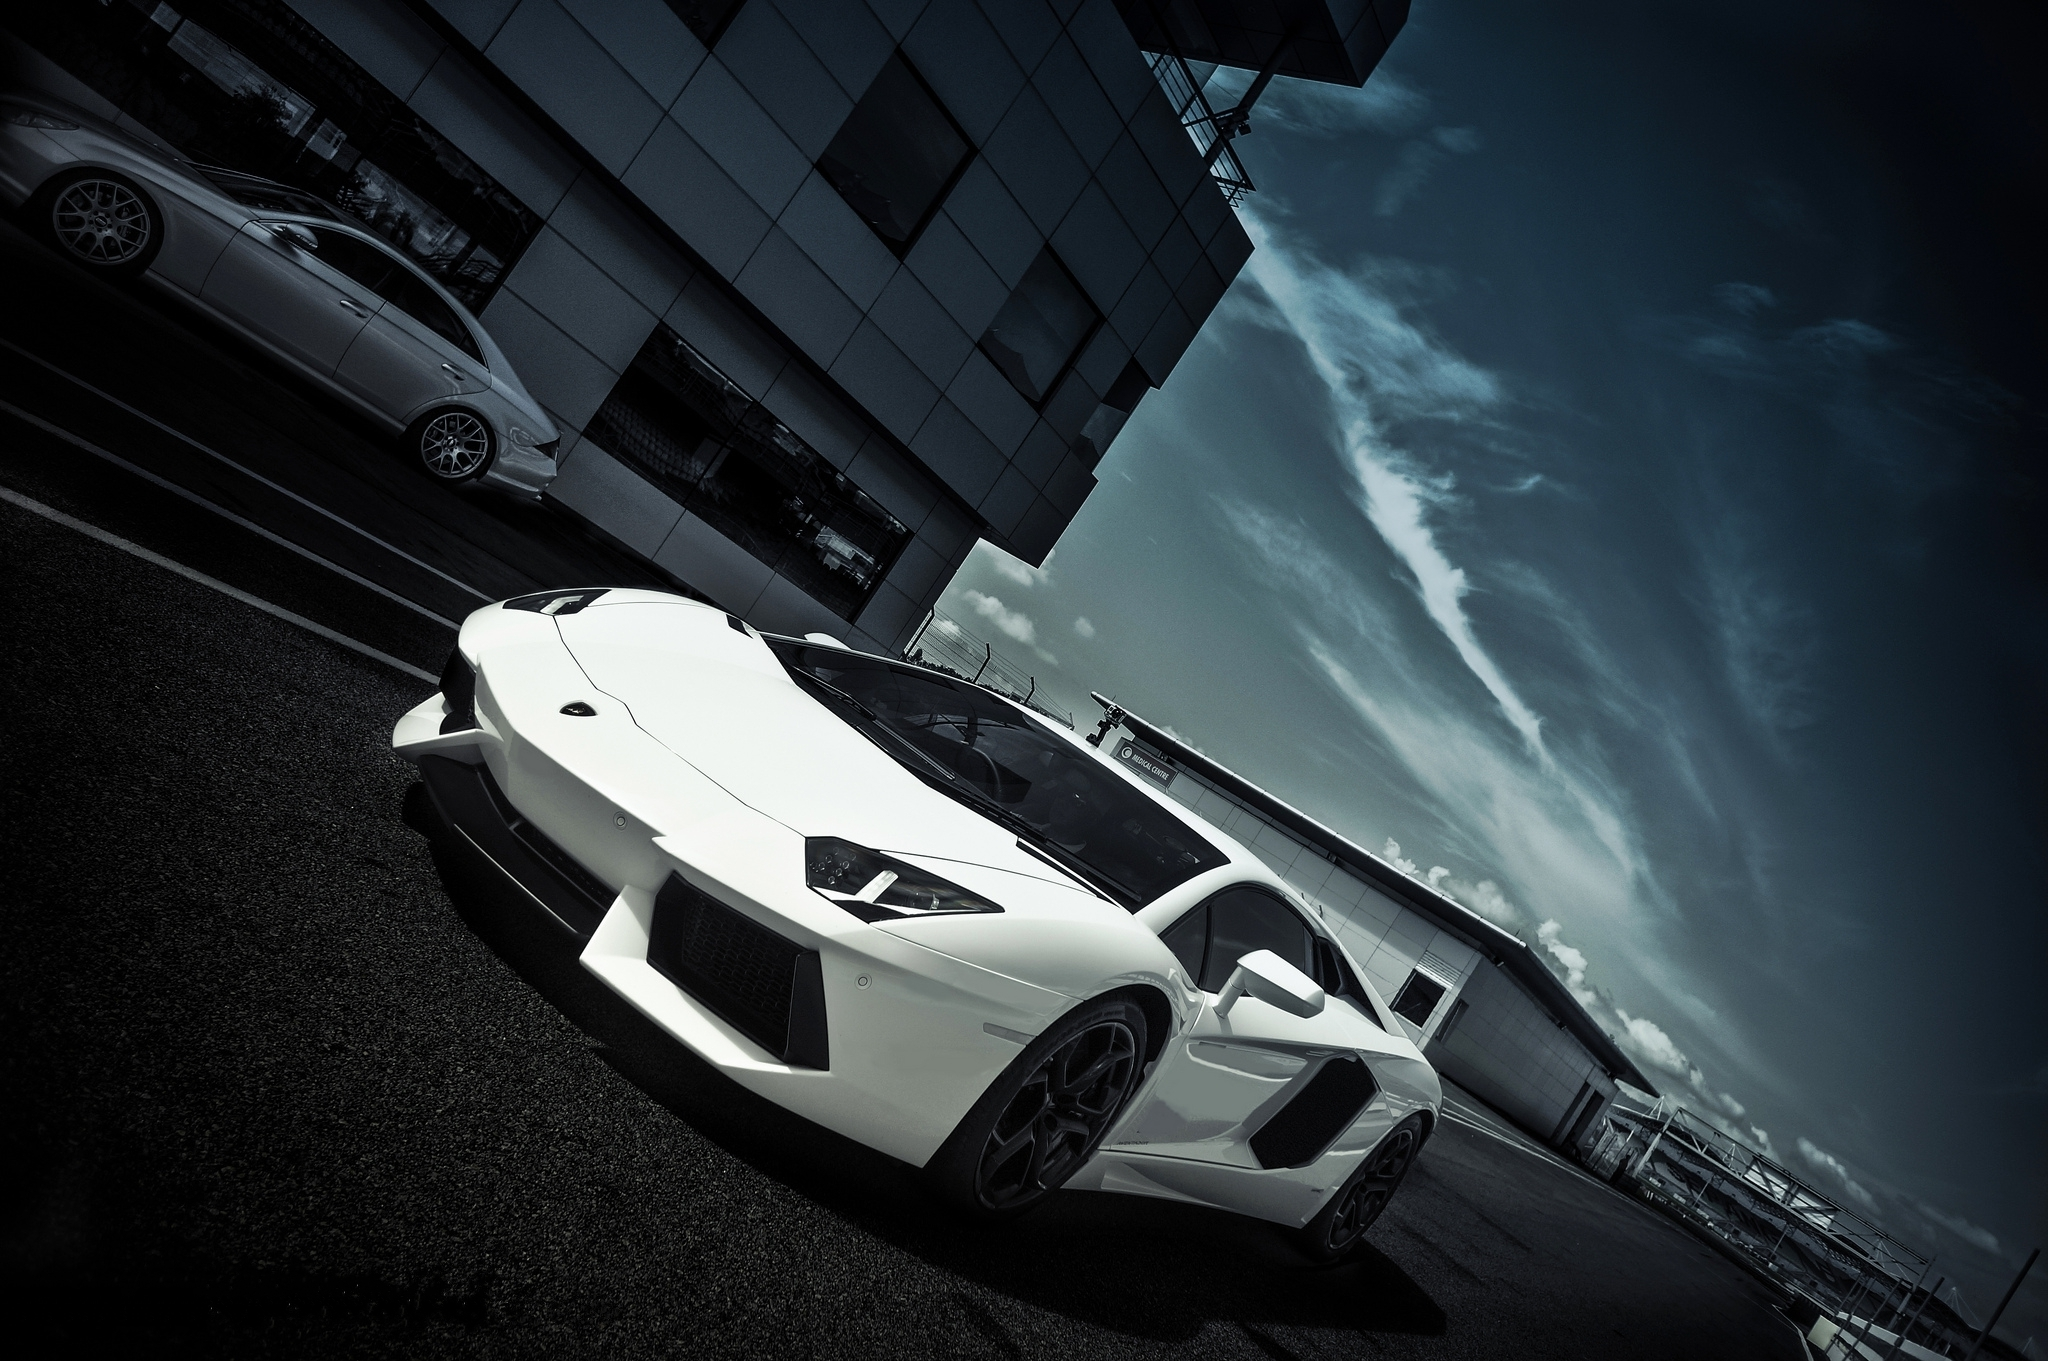 147178 Screensavers and Wallpapers Windows for phone. Download Windows, Sky, Clouds, Lamborghini, Cars, Building, Road, Markup, Side View, Aventador, Lp700-4 pictures for free